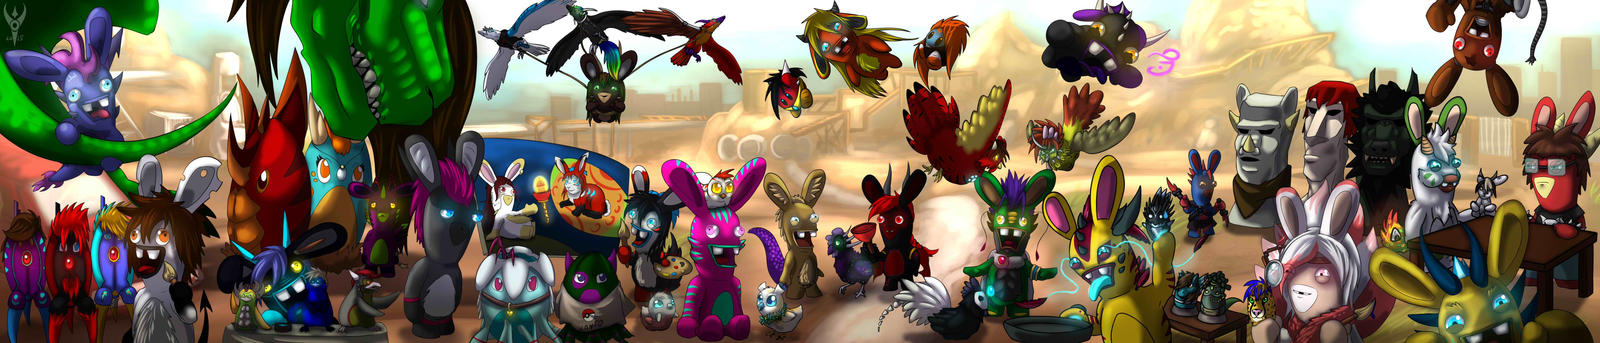 Easter Egg Hunt - Rabbit Style by Arenthor